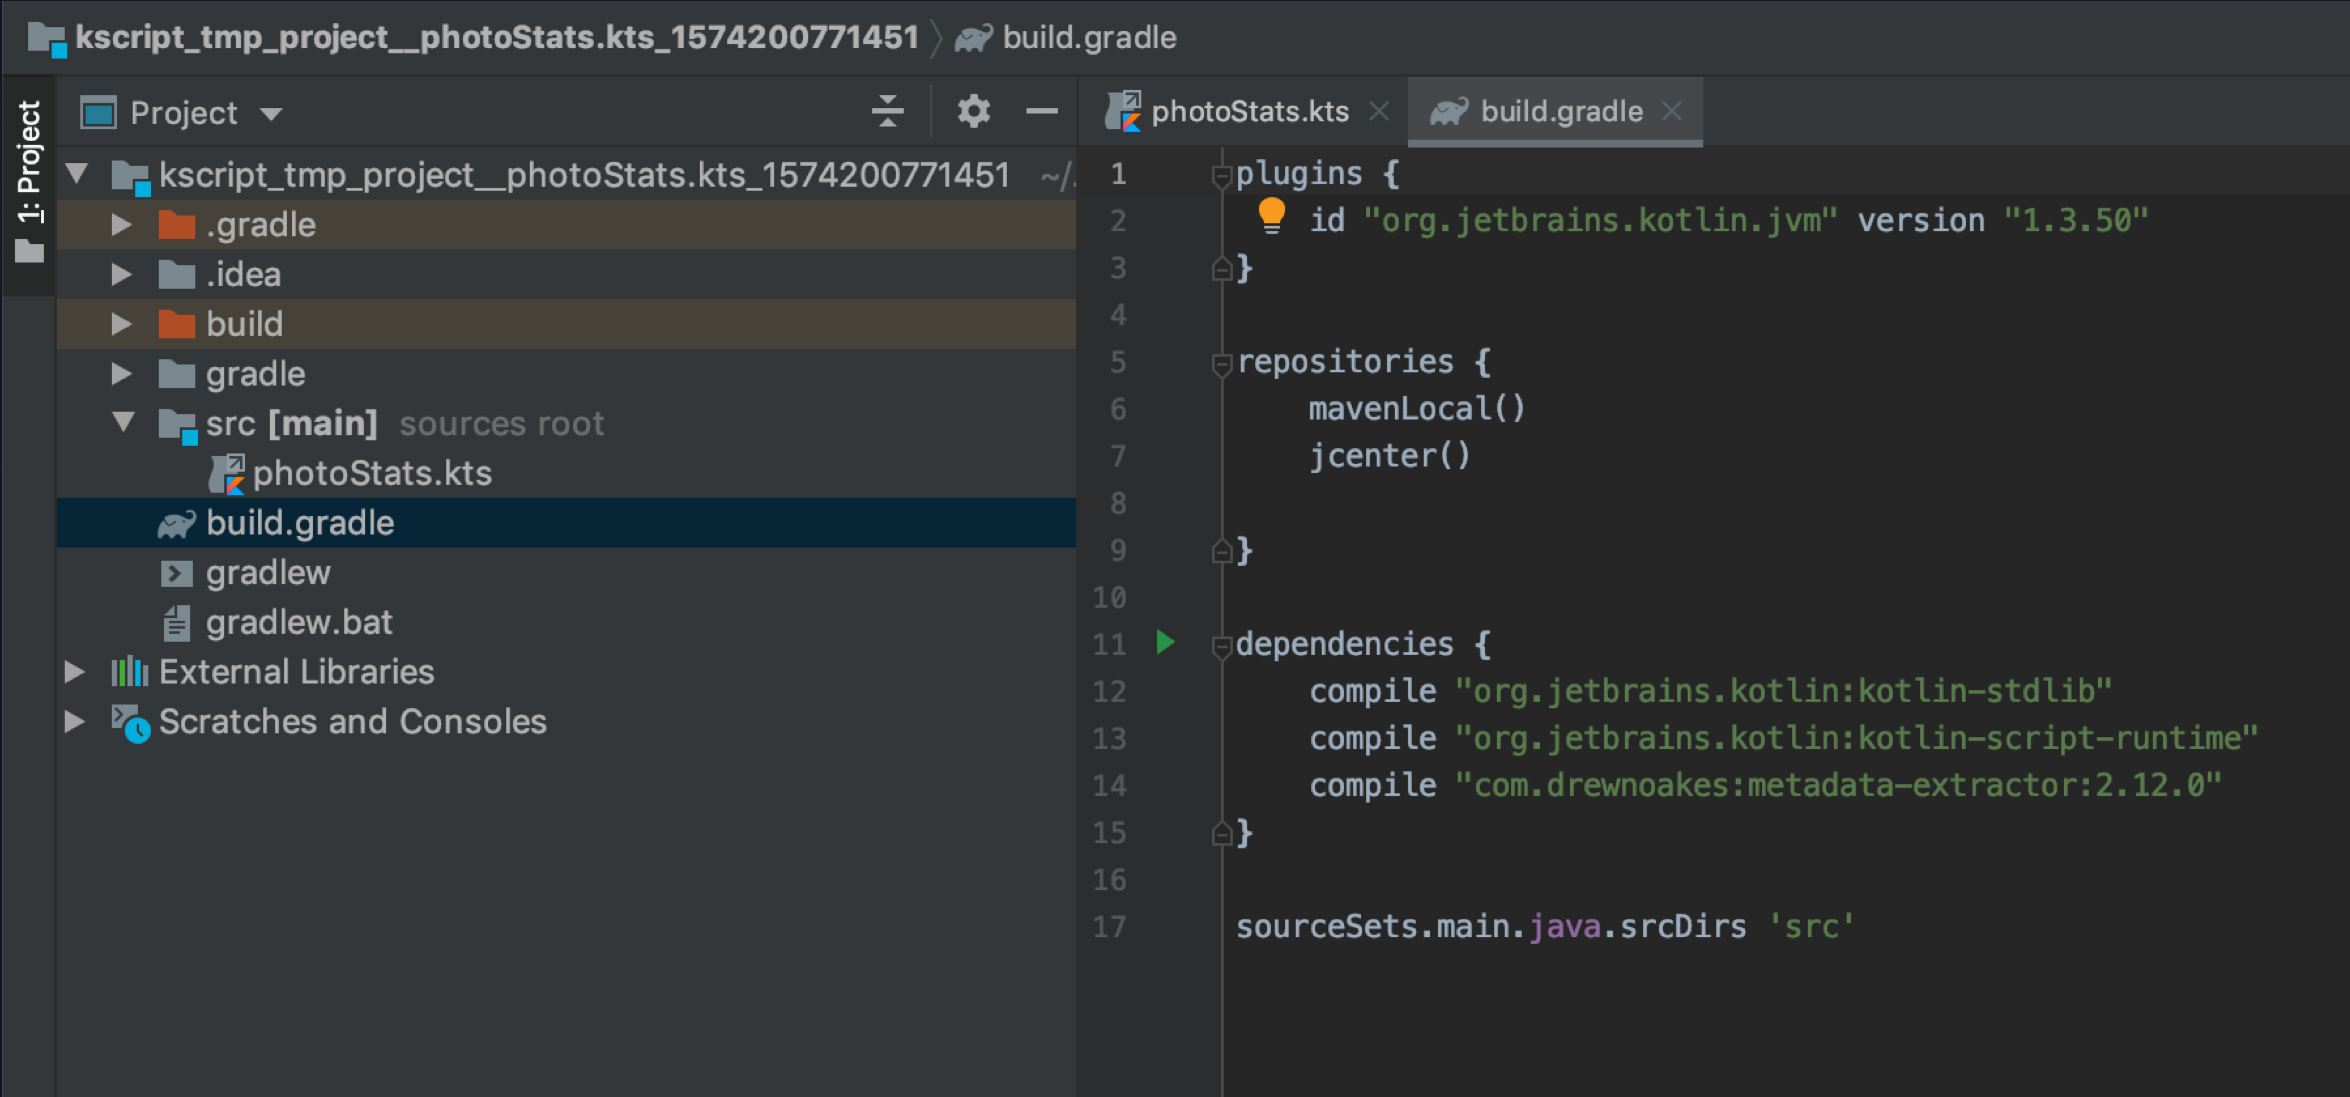 The temporary IntelliJ IDEA project created by kscript